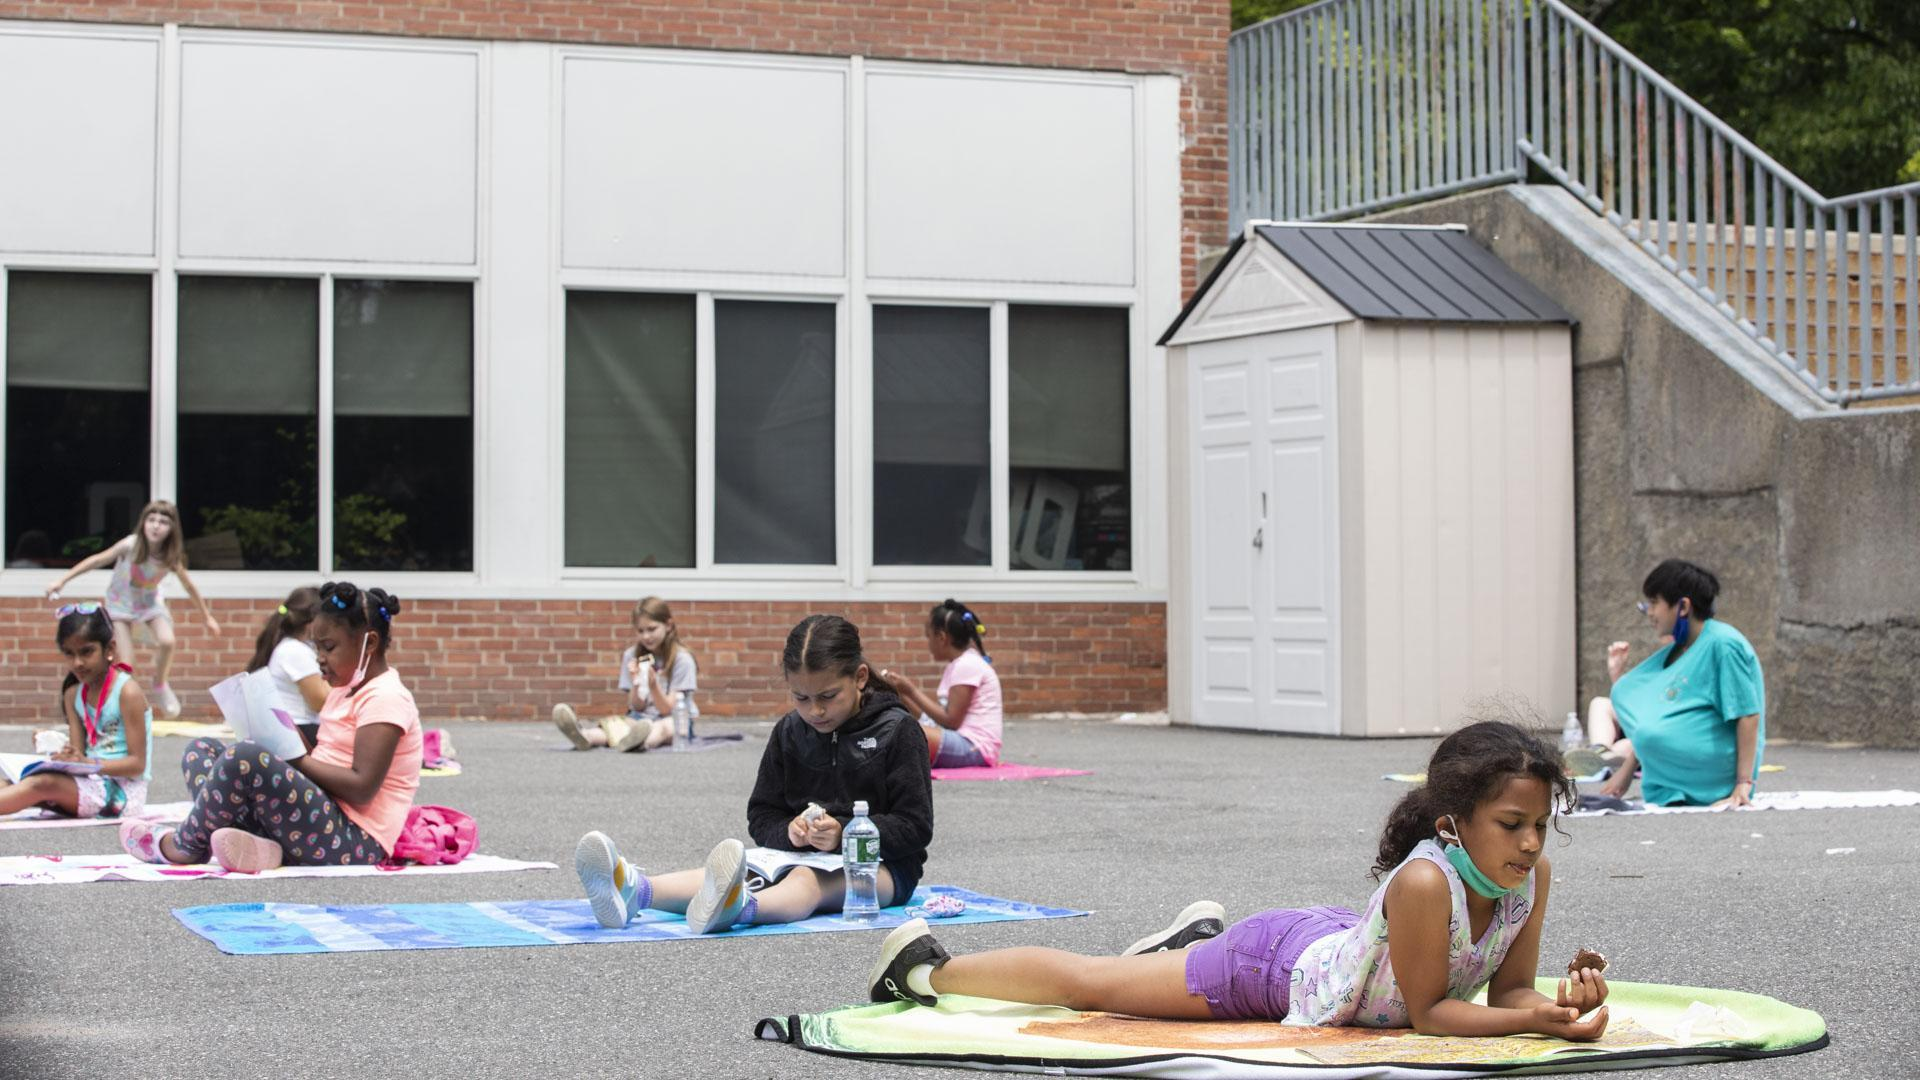 Students reading on beach towels on blacktop